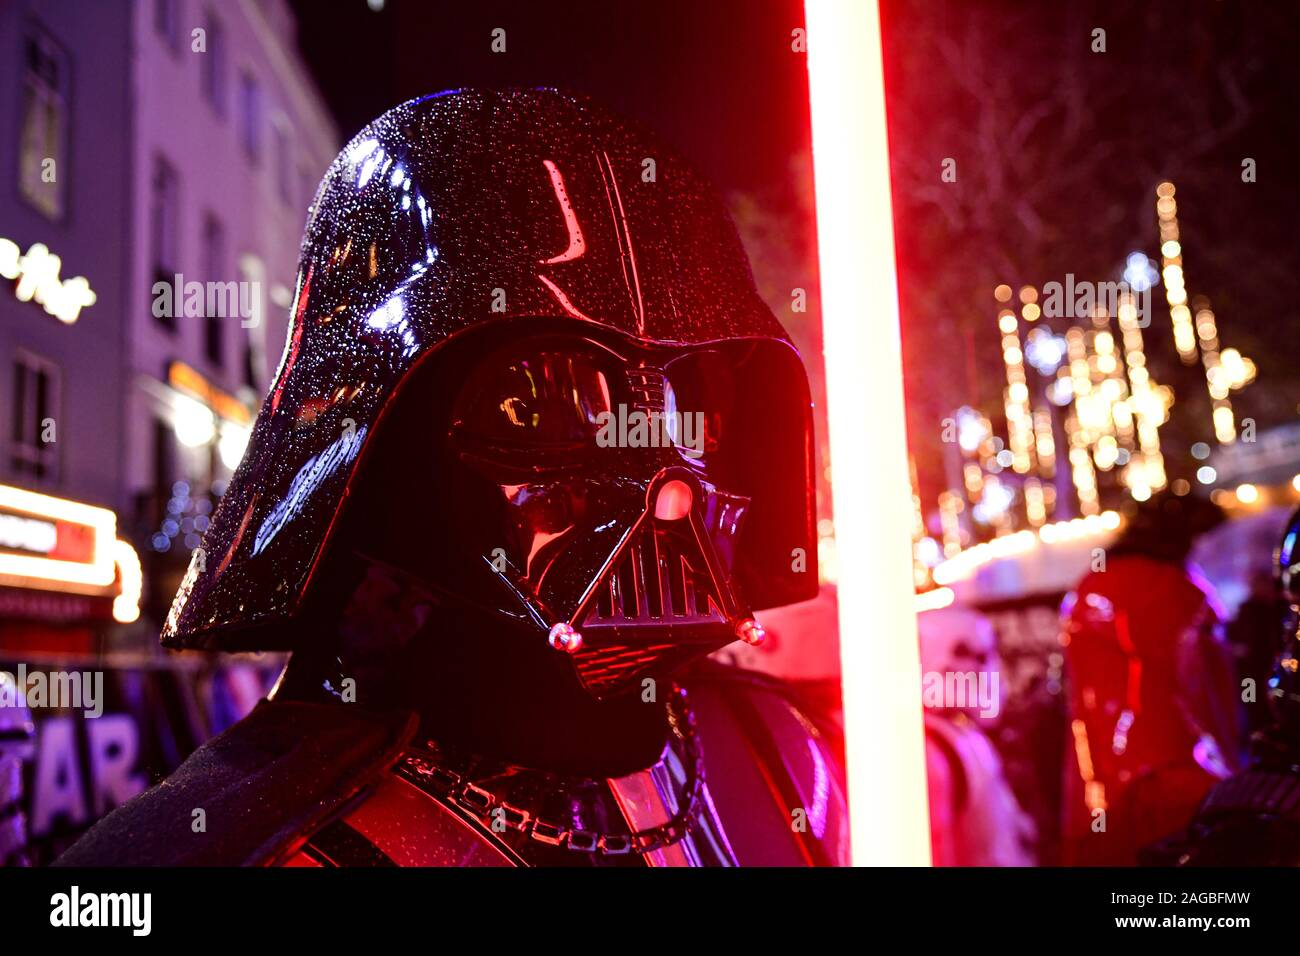 Darth Vader With A Lightsaber At The Star Wars The Rise Of Skywalker Premiere At Cineworld Leicester Square London Stock Photo Alamy